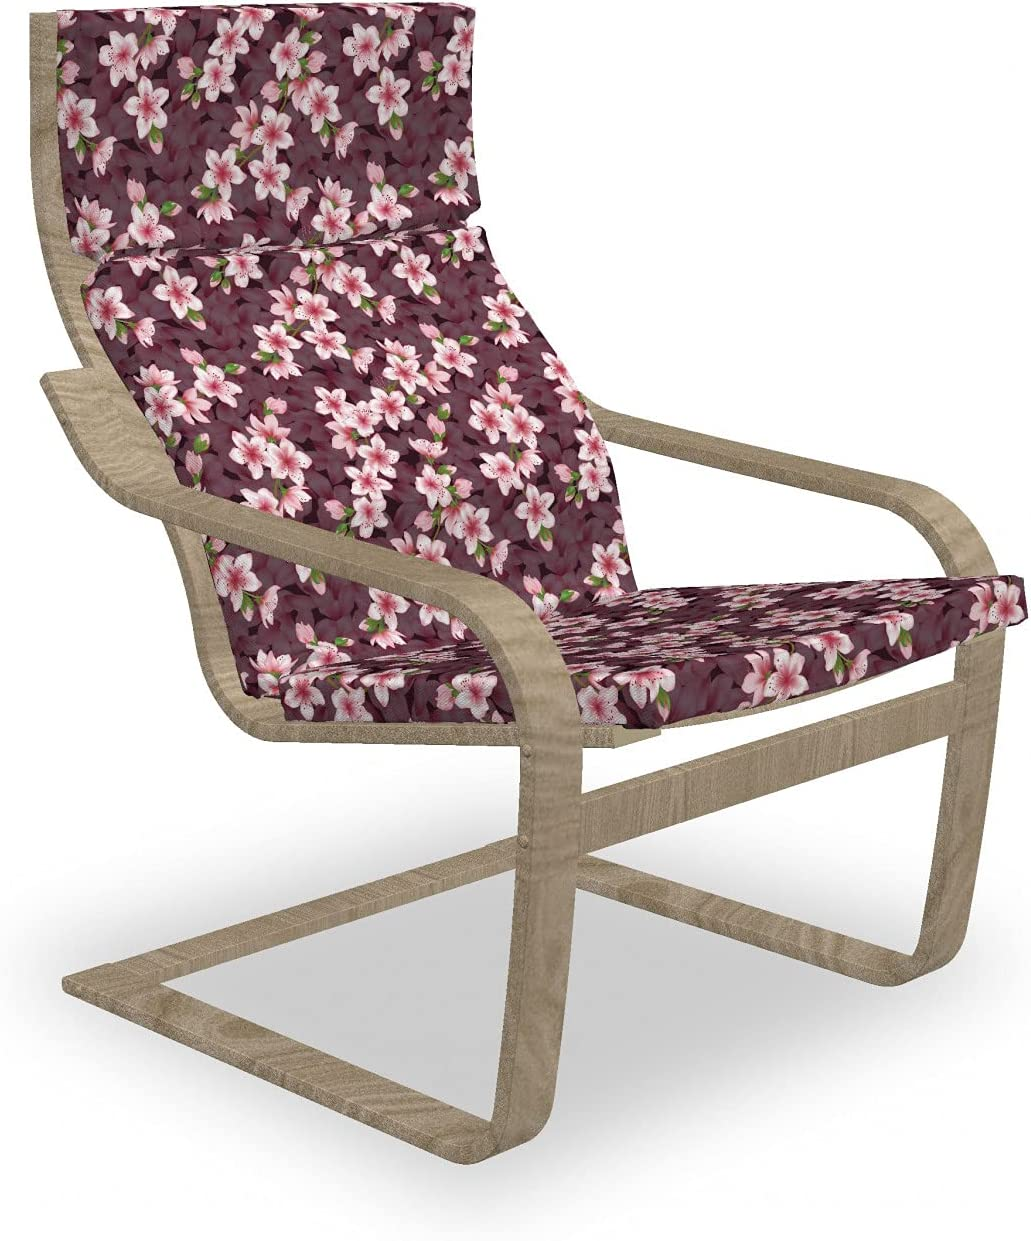 Free shipping on posting reviews Ambesonne Floral Armchair Pad and Slipcover Cherry 1 year warranty S Blossom of